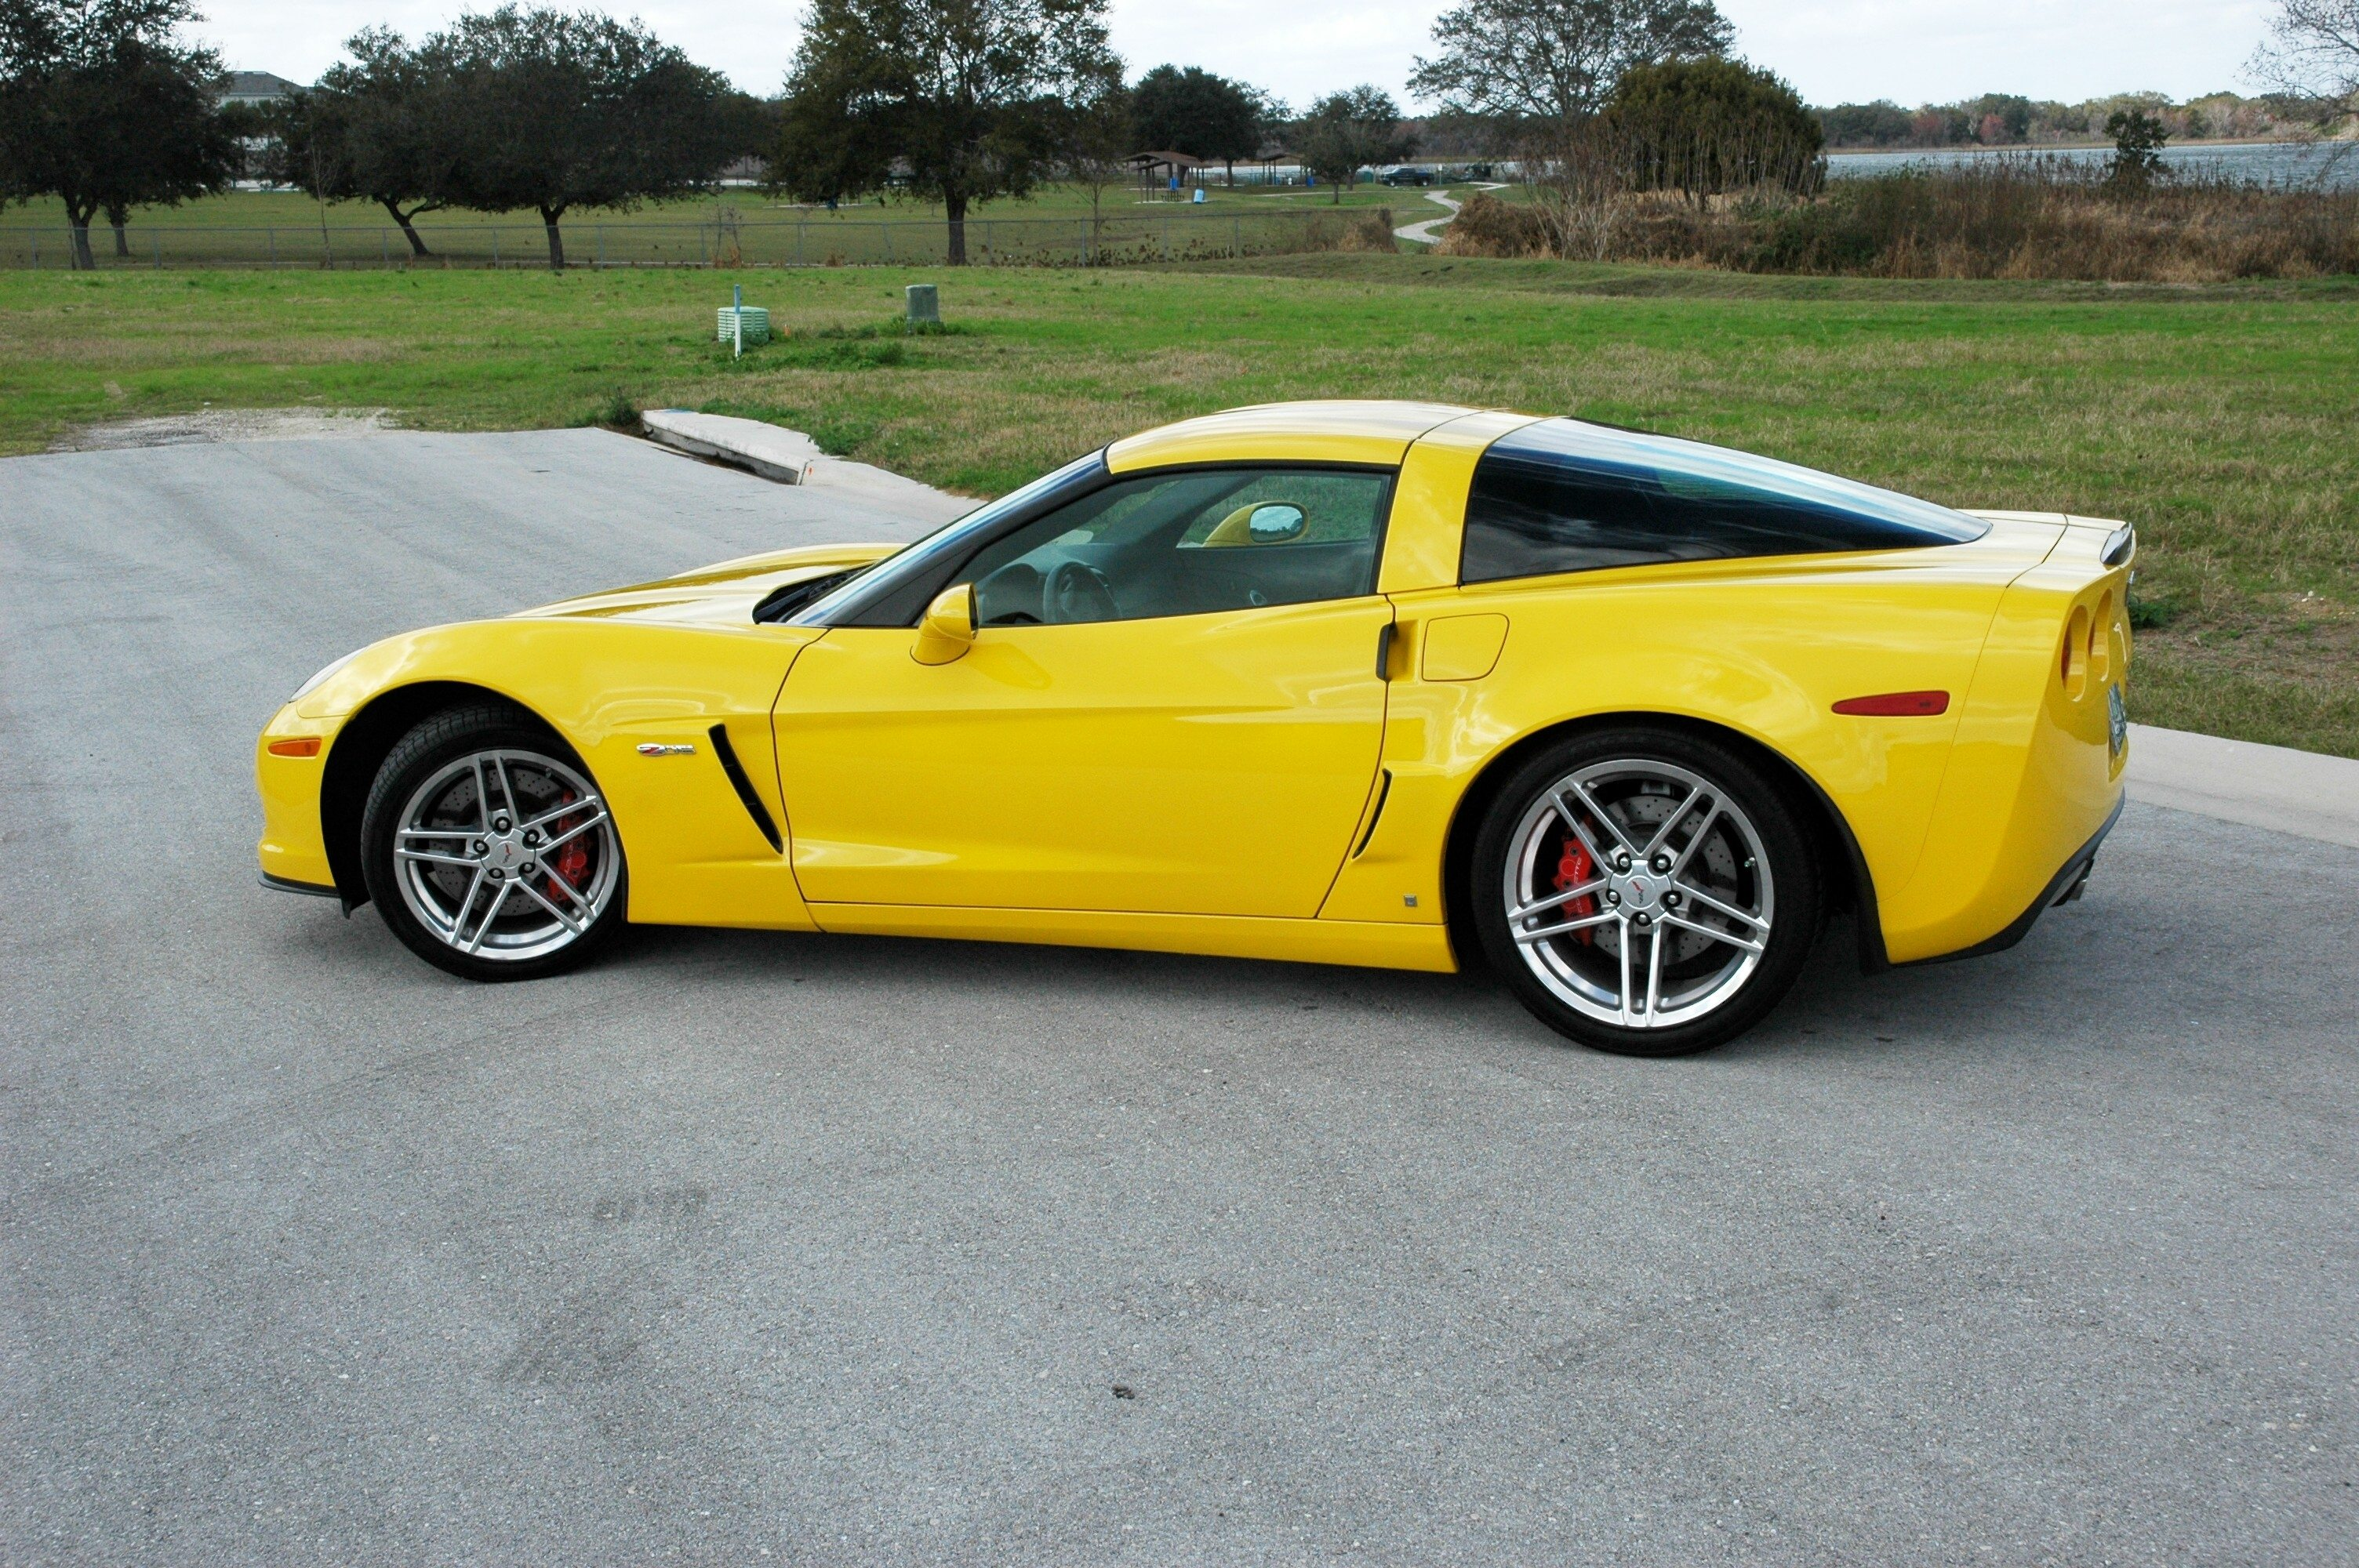 2007 C6 Corvette | Image Gallery & Pictures